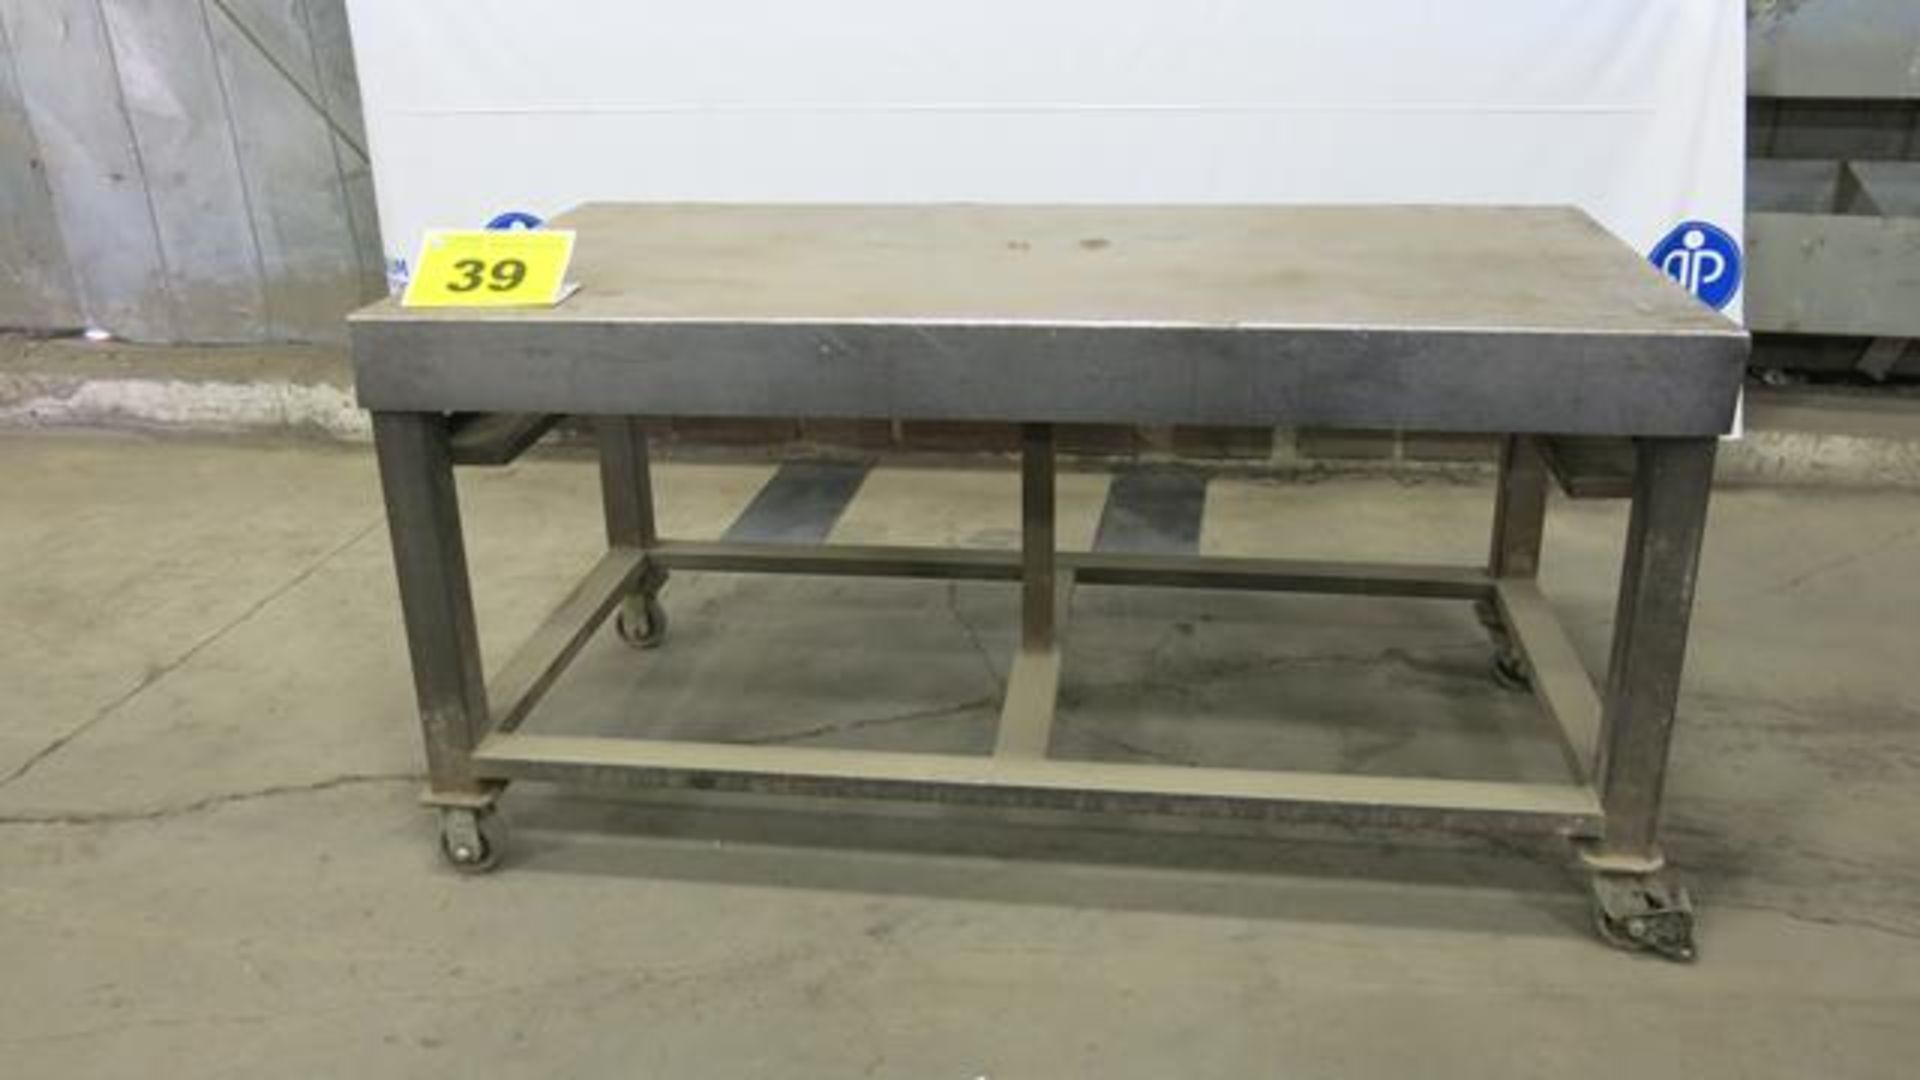 Lot 39 - STEEL, ROLLING WORK BENCH, 5' X 3' X 3'